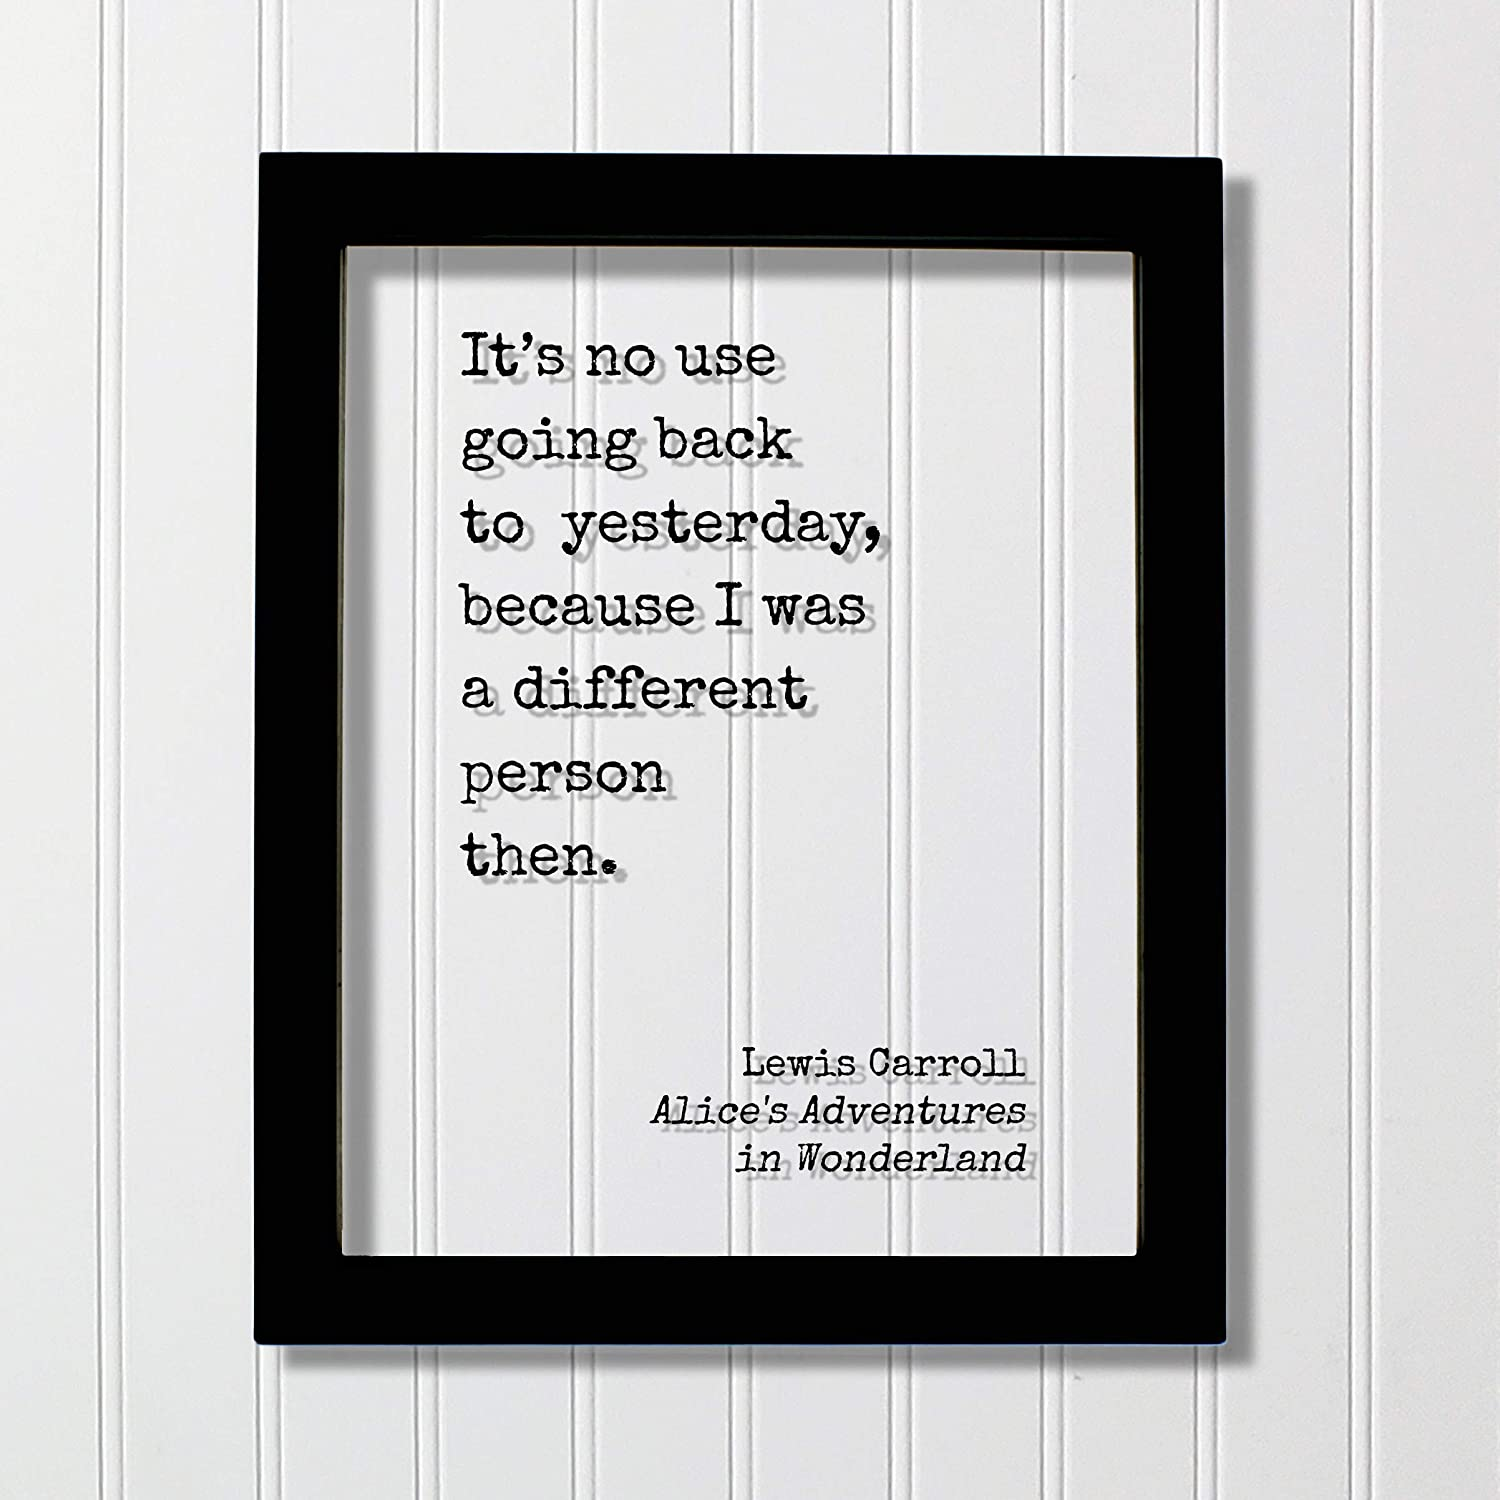 Alices Adventures in Wonderland Framed Quote Art because I was a different person then Lewis Carroll It/'s no use going back to yesterday